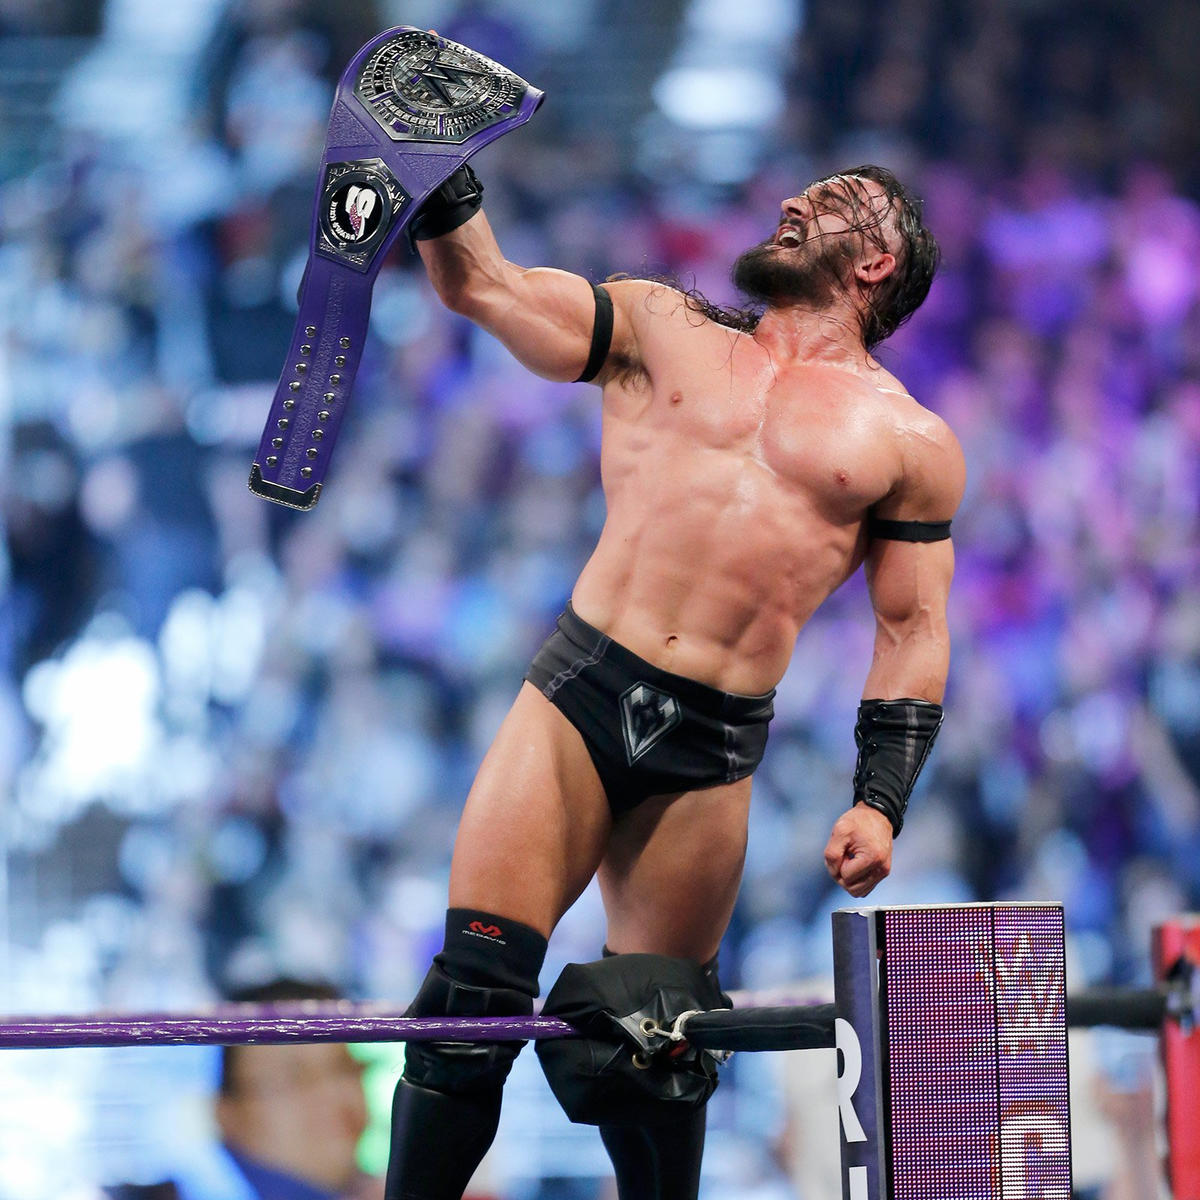 Forcing Swann to tap out, Neville officially becomes King of the Cruiserweights by capturing the Cruiserweight Championship.